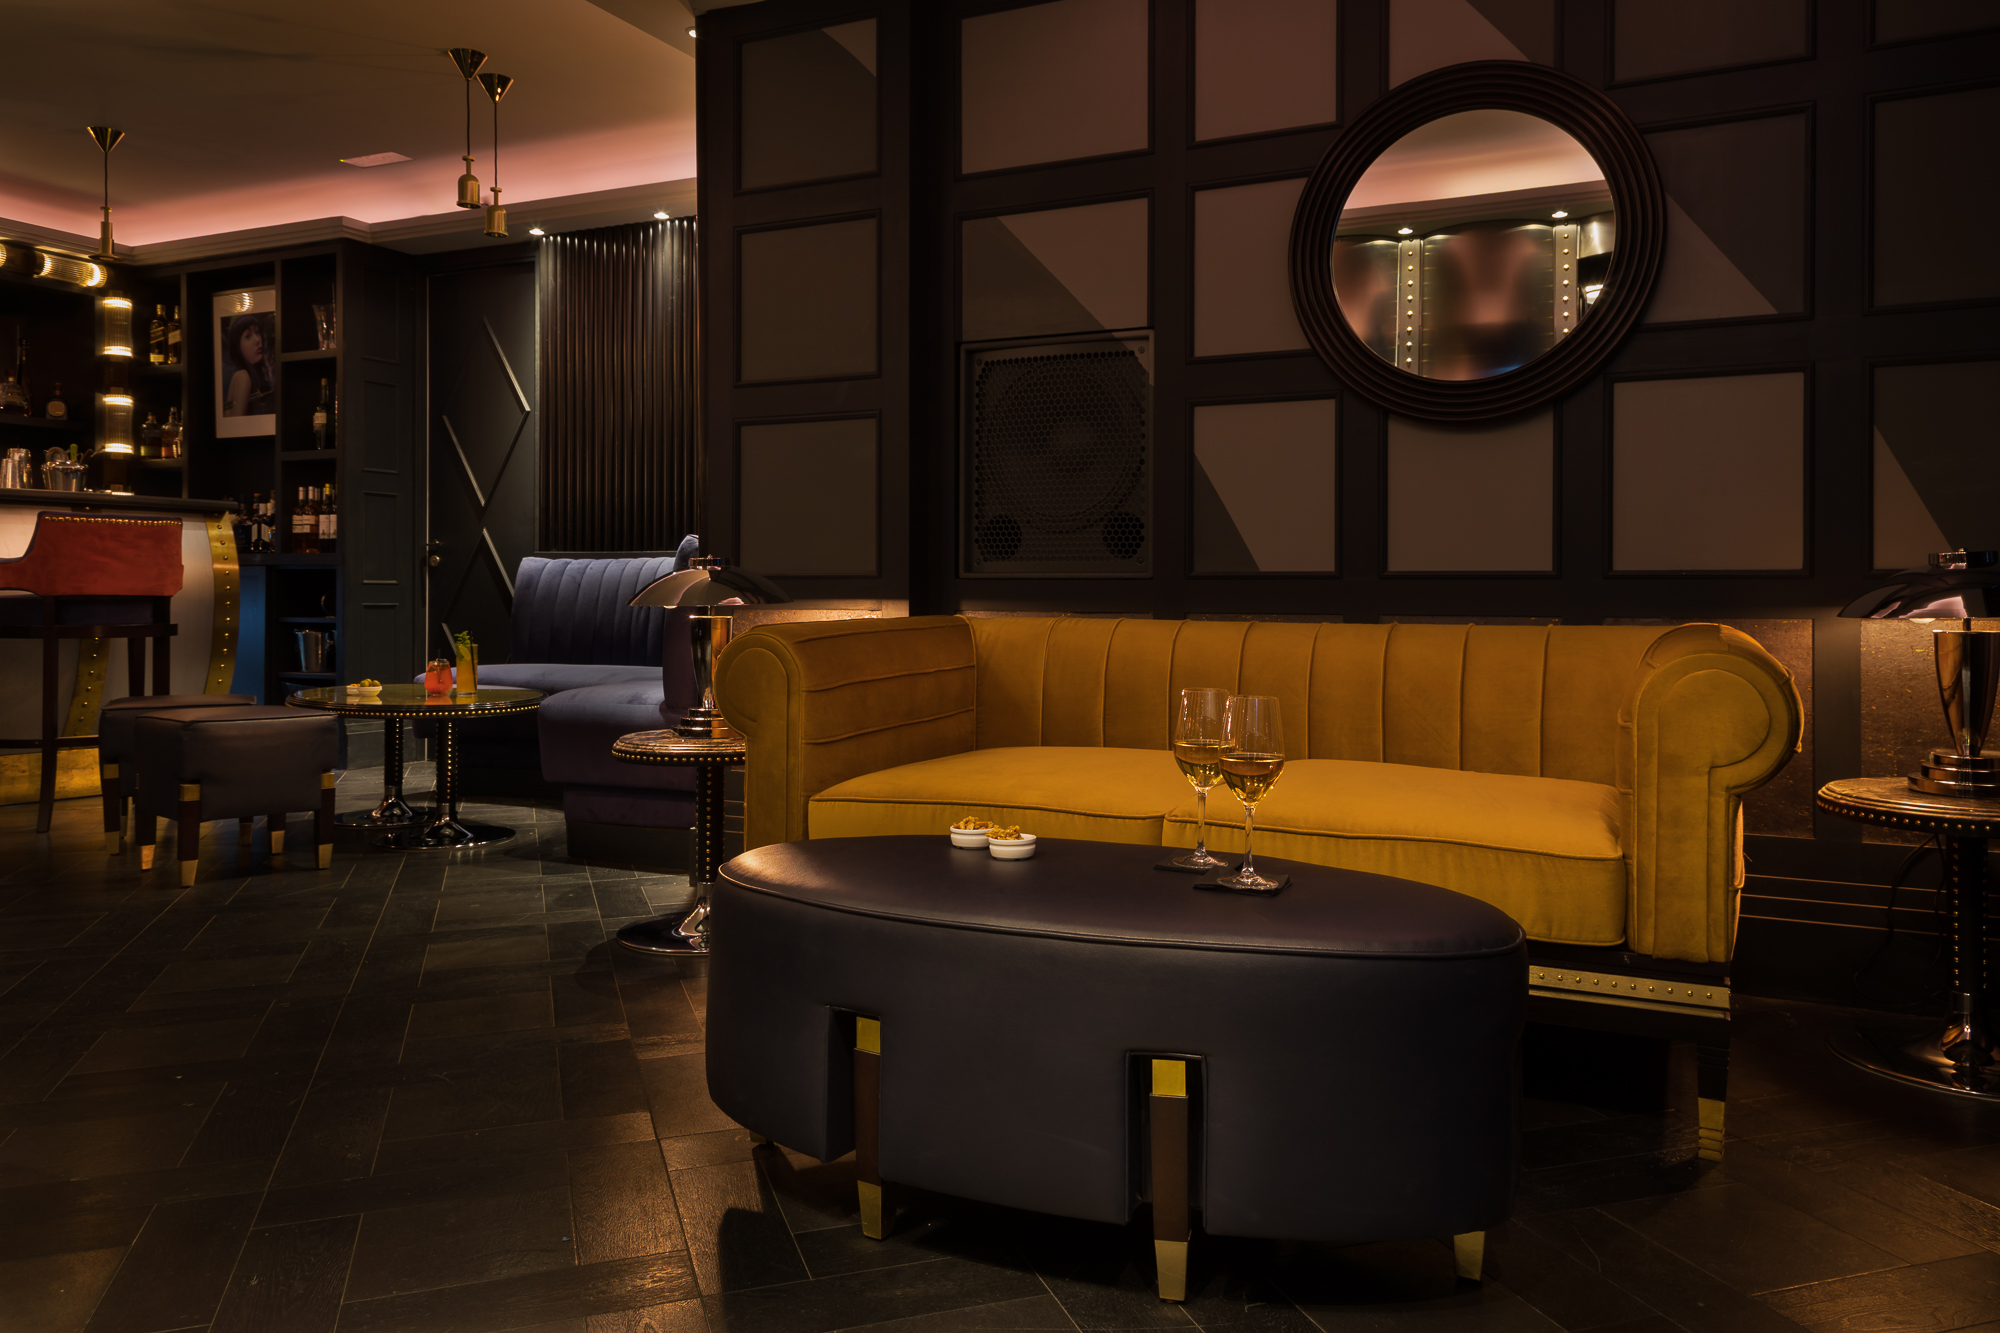 Paul Craig, Interior Photographer, Hotel Photography, Commercial Property Bar lounge wine